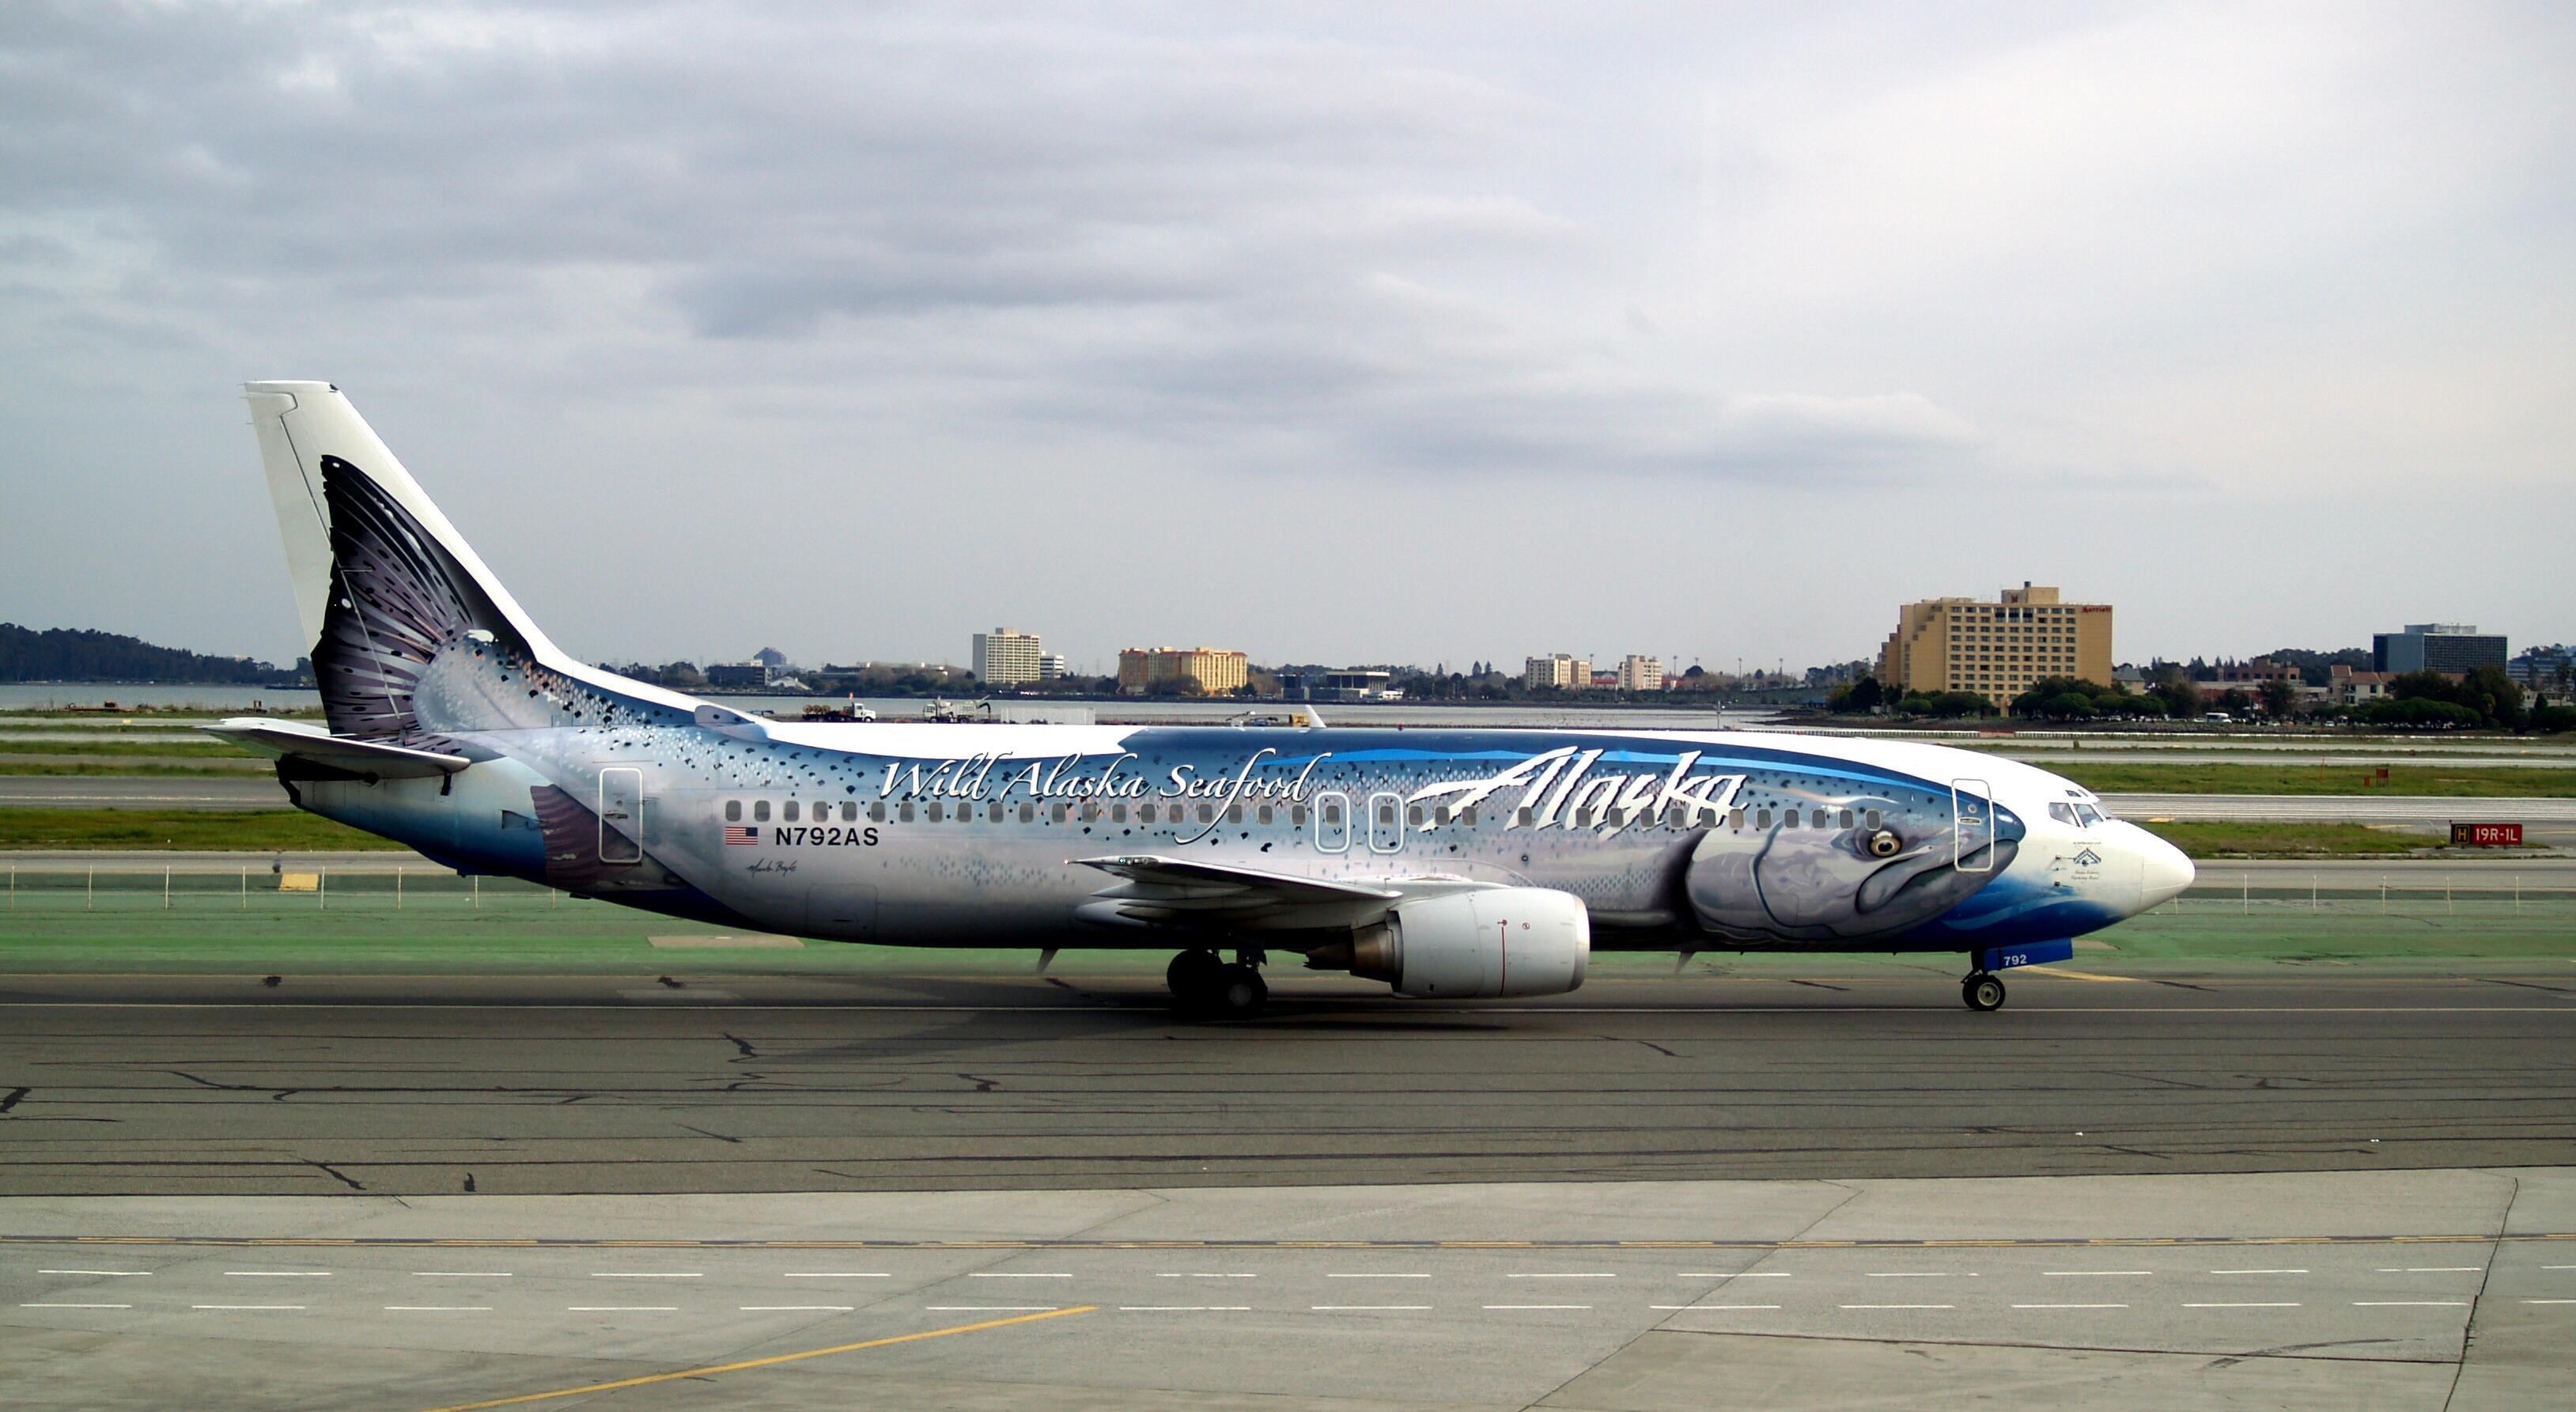 Alaska_Airlines Salmon - Boeing_737-490_N792AS